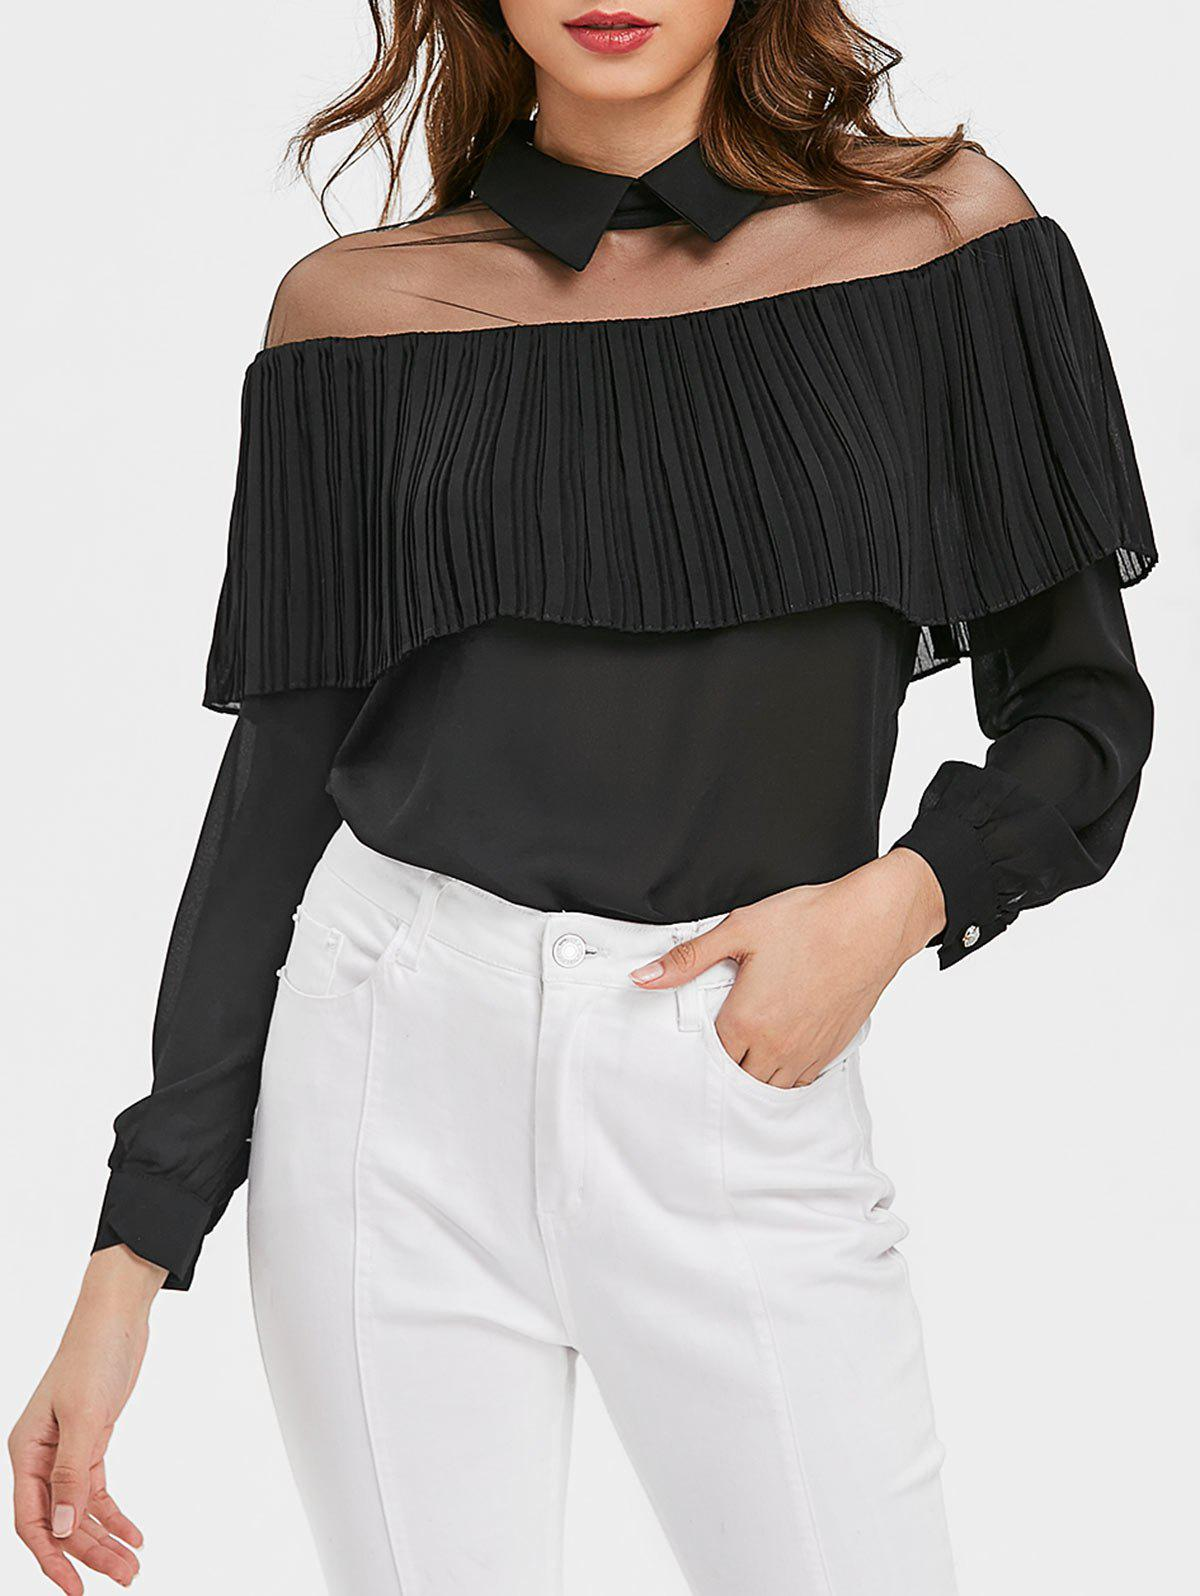 Store See Through Mesh Insert Ruffle Blouse